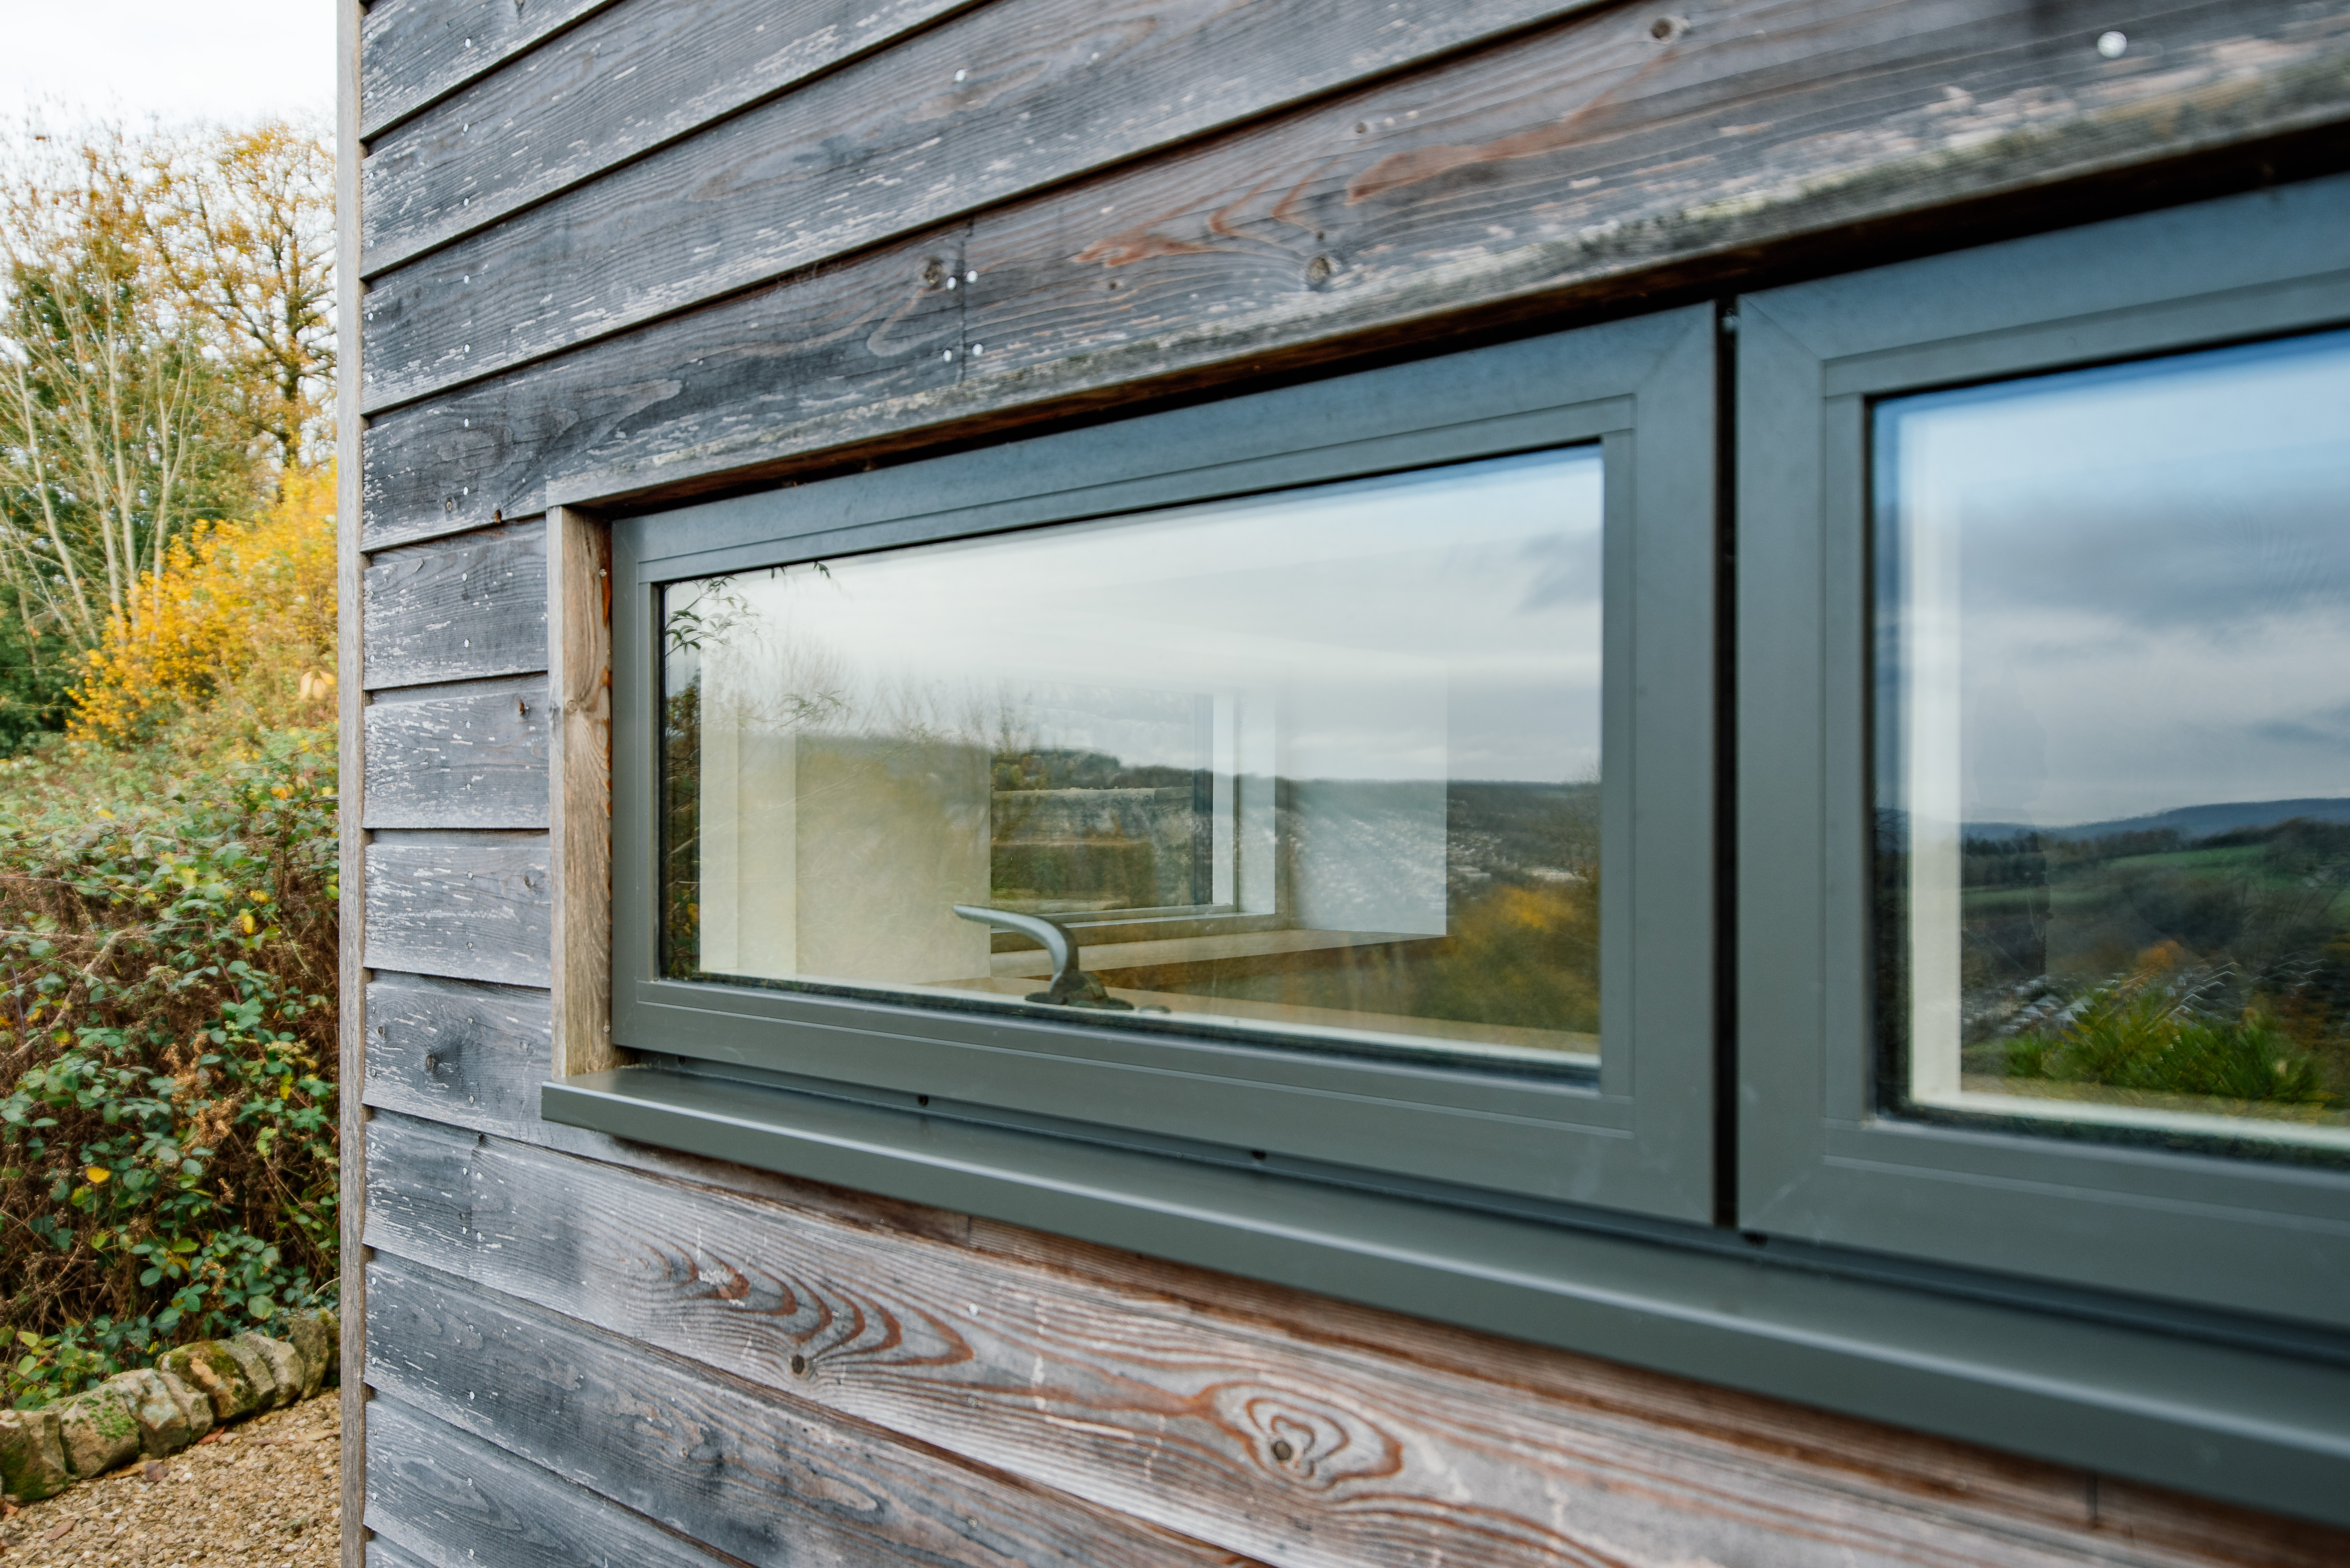 Window detail in timber cladding ideal combi